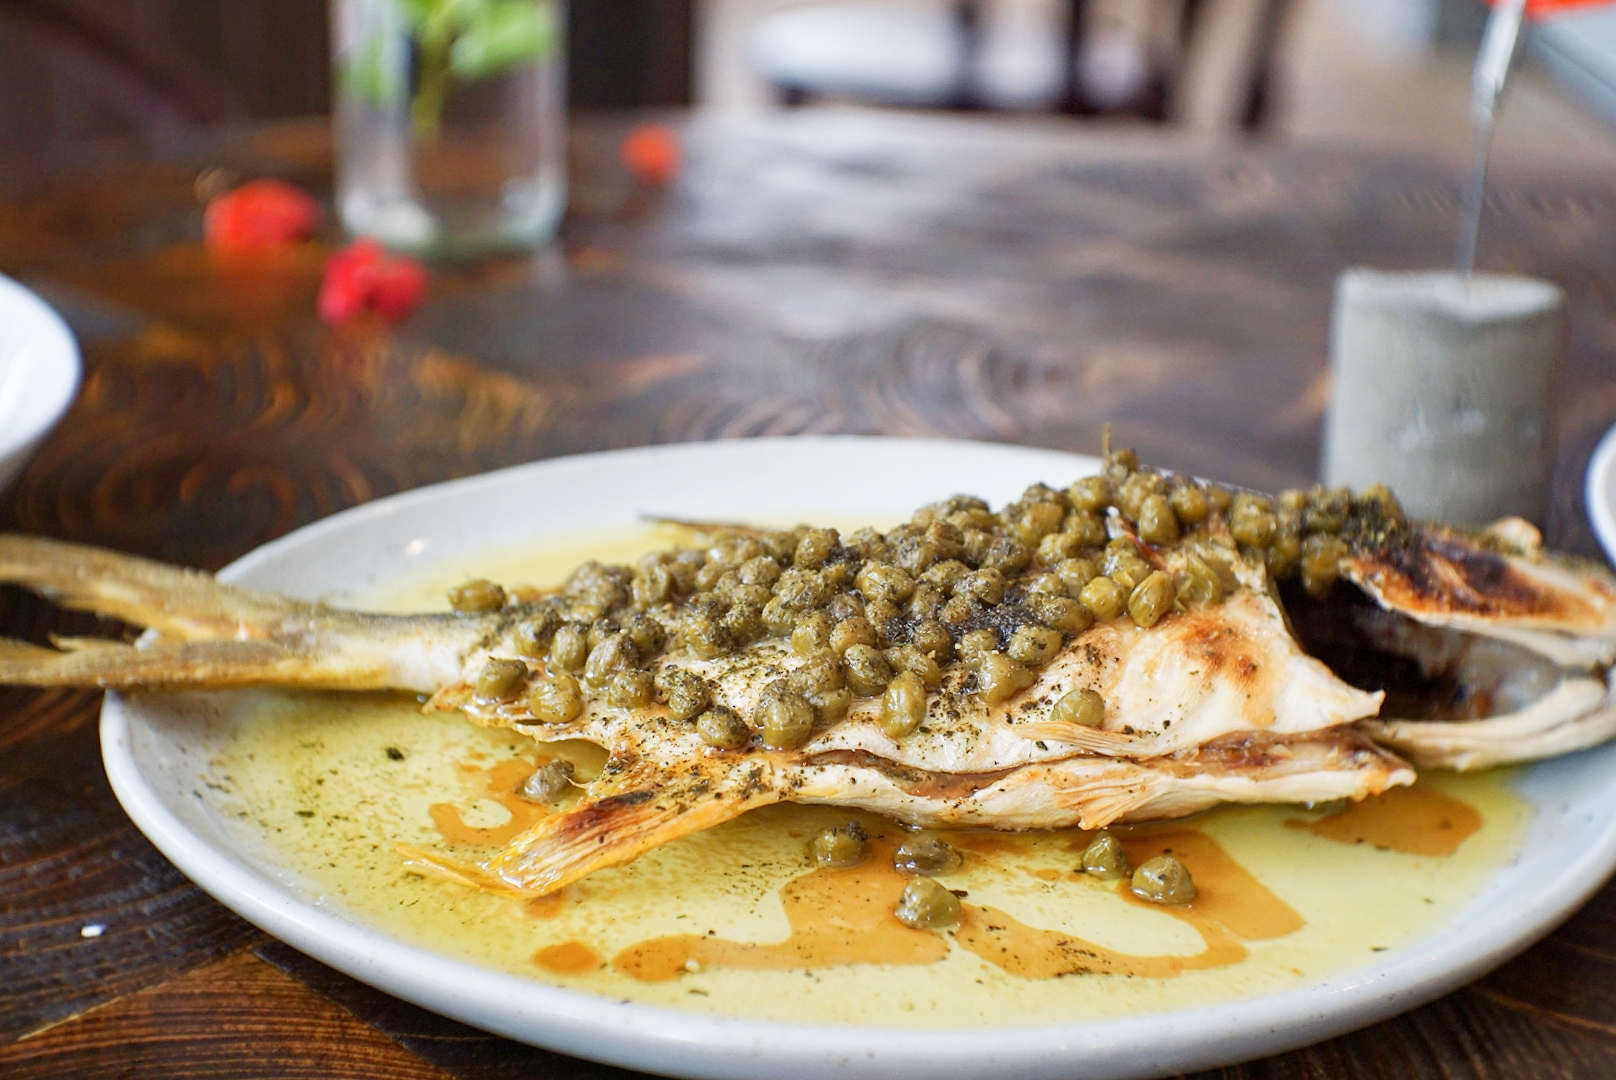 The main course - grilled golden pomfret topped with a generous amount of capers.